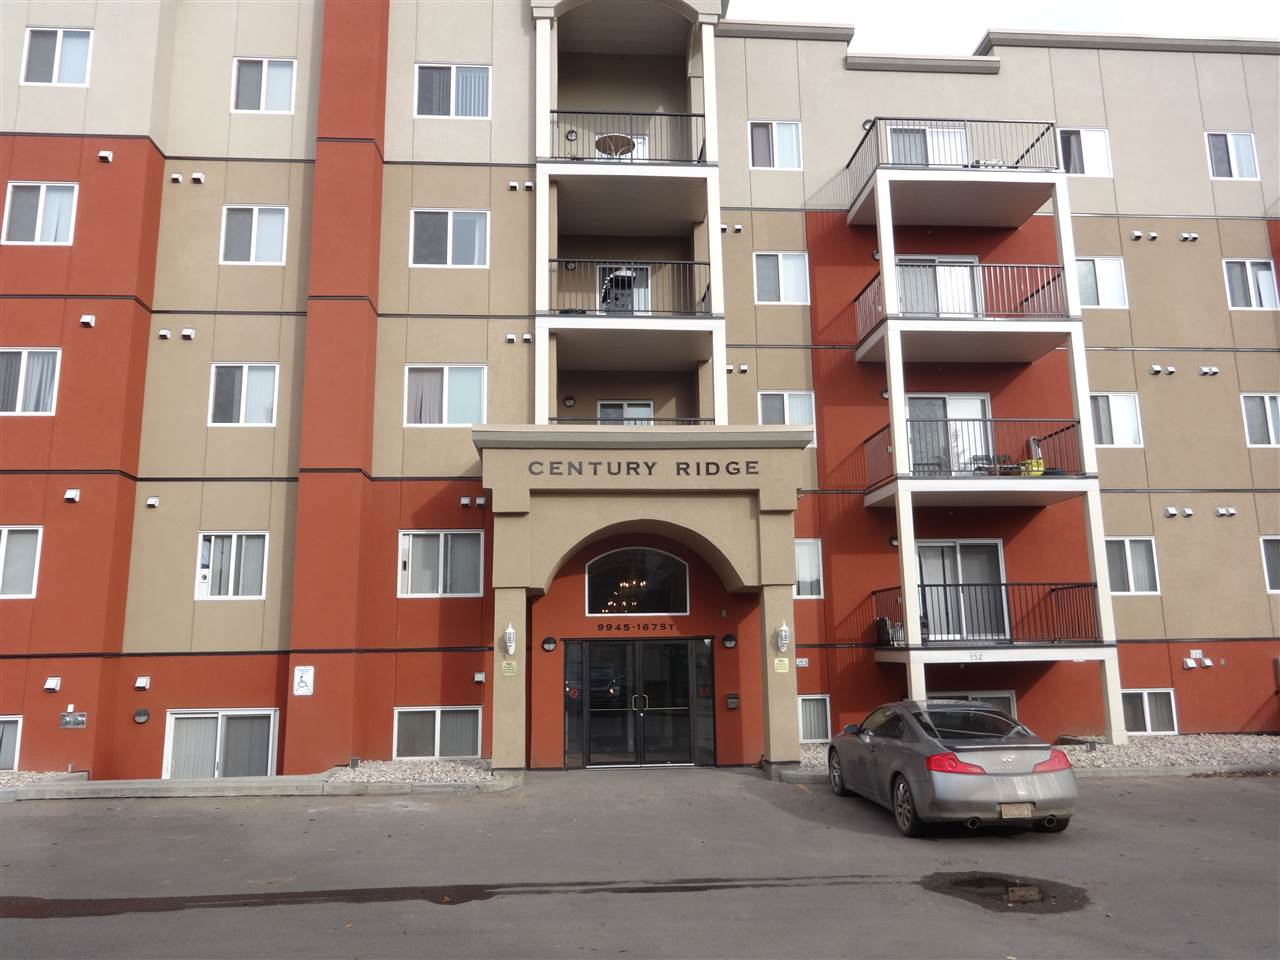 One bedroom plus Den with 1 full bath (cheater ensuite) on 3rd floor. Almost 800 square feet. Open floor plan for kitchen, eating area and living room. Balcony faces south. Unit faces south and away from roadway. 2 outdoor parking spaces are very close to main entrance door. Has in-suite laundry and storage. Excellent transit access. Close to many amenities.